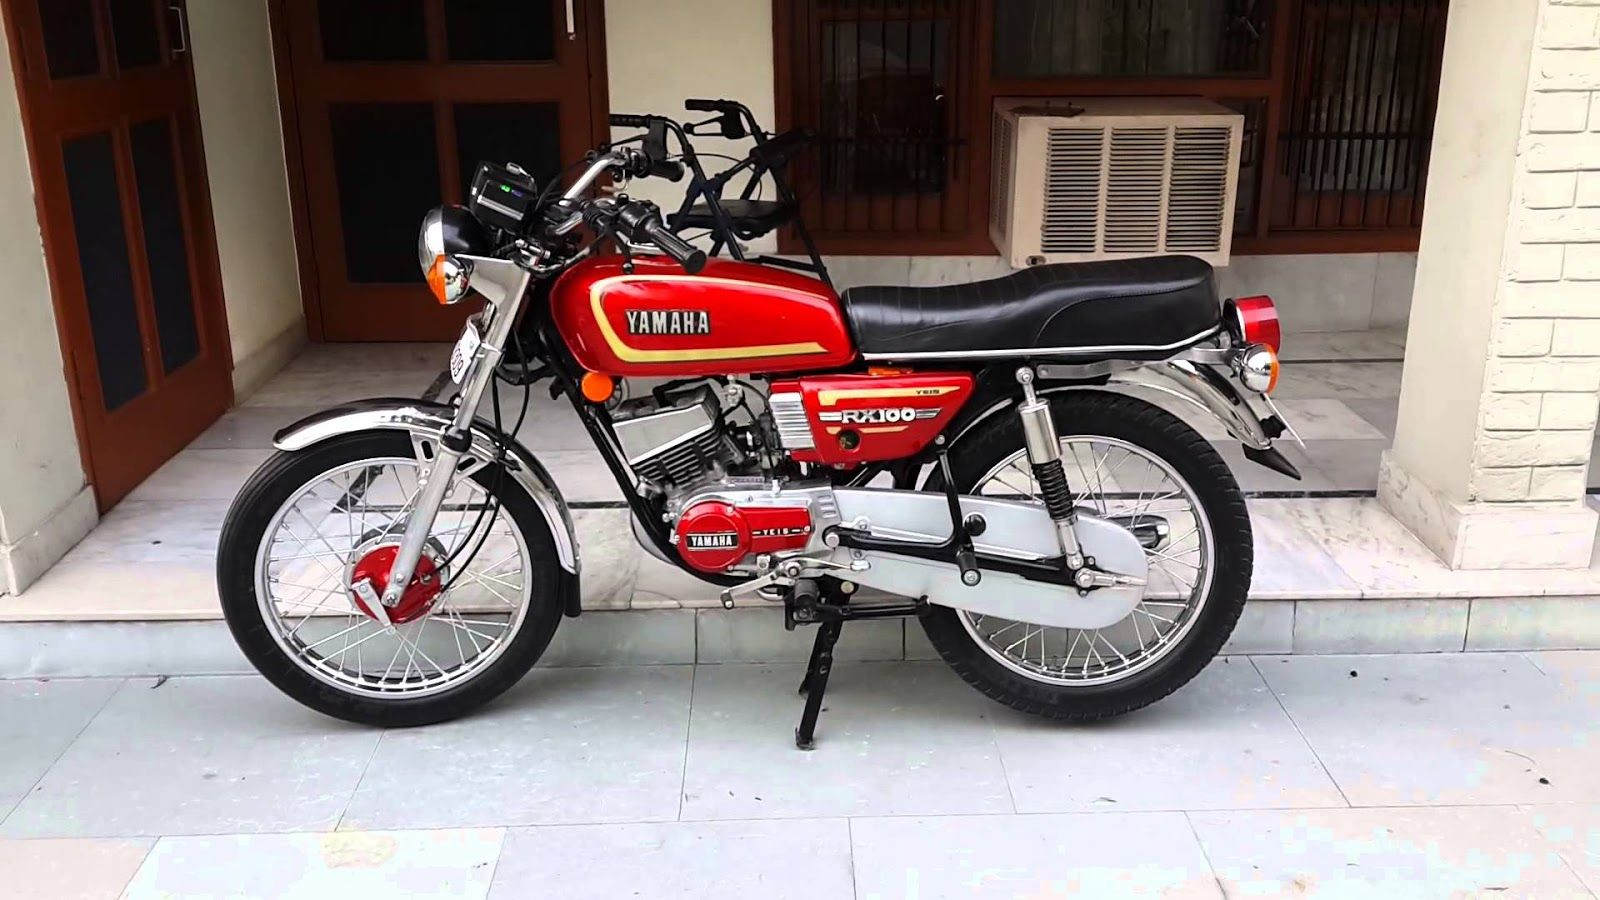 Motor Talkies Yamaha Rx100 Yamaha Bike News